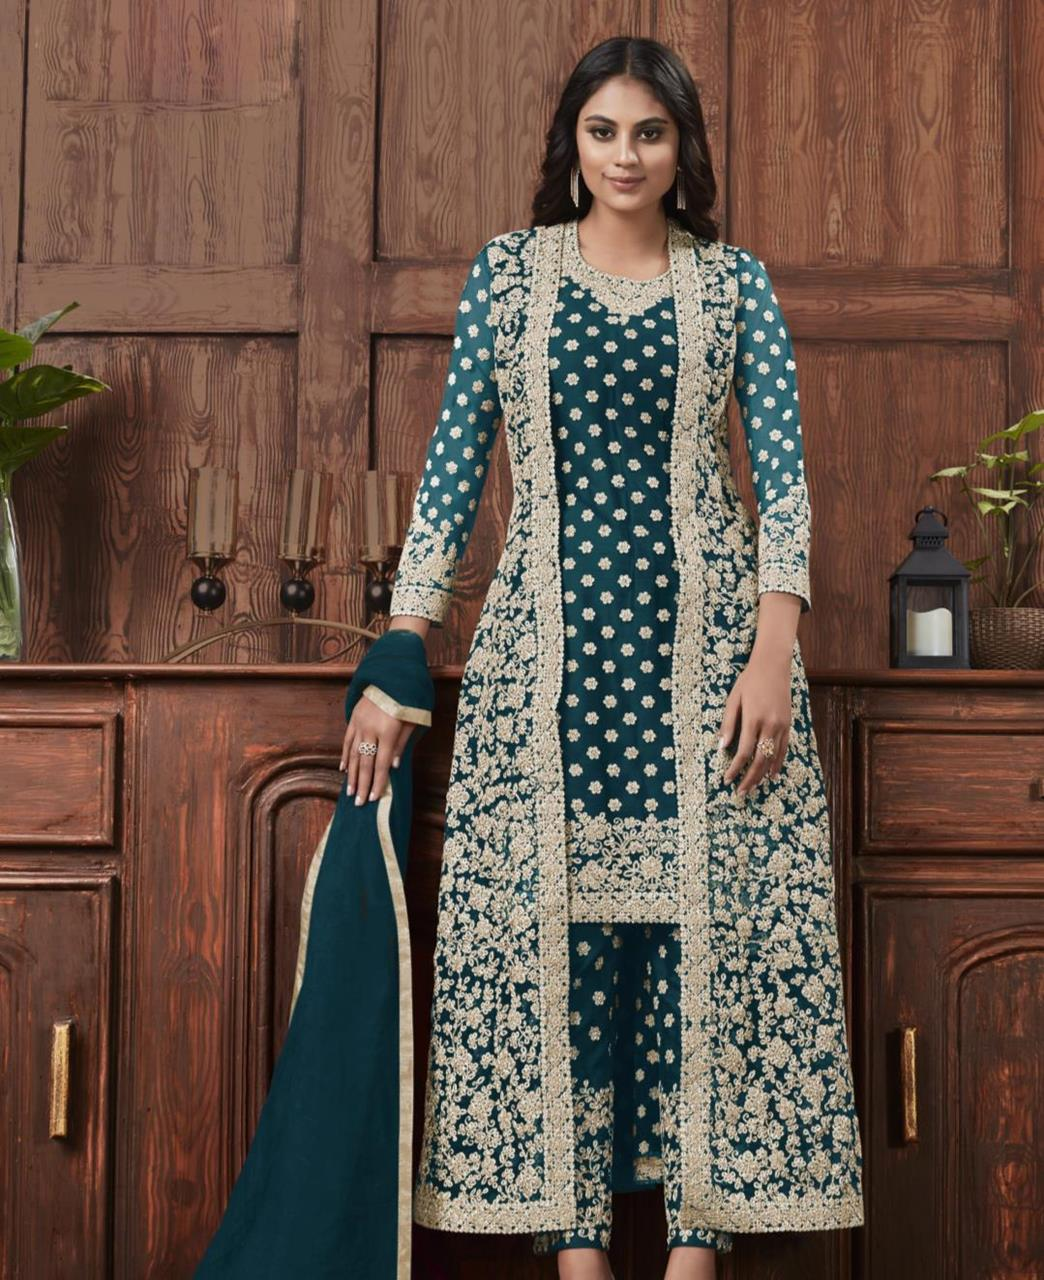 Satin Straight cut Salwar Kameez in Teal Blue